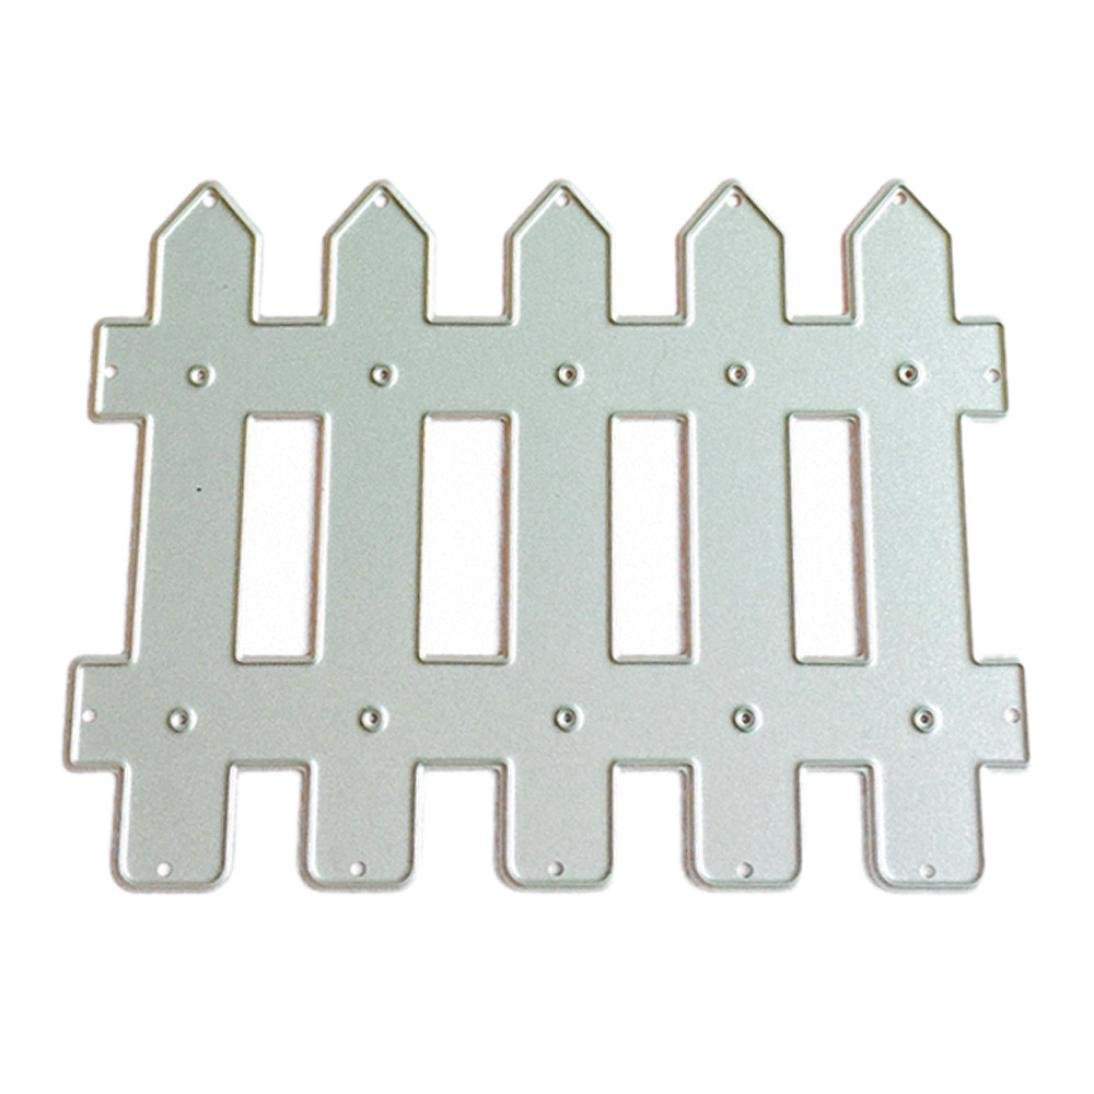 Staron Home Cute Mould Metal Die Cutting Template Dies Stencil for DIY Scrapbook Album Paper Card Craft (J)